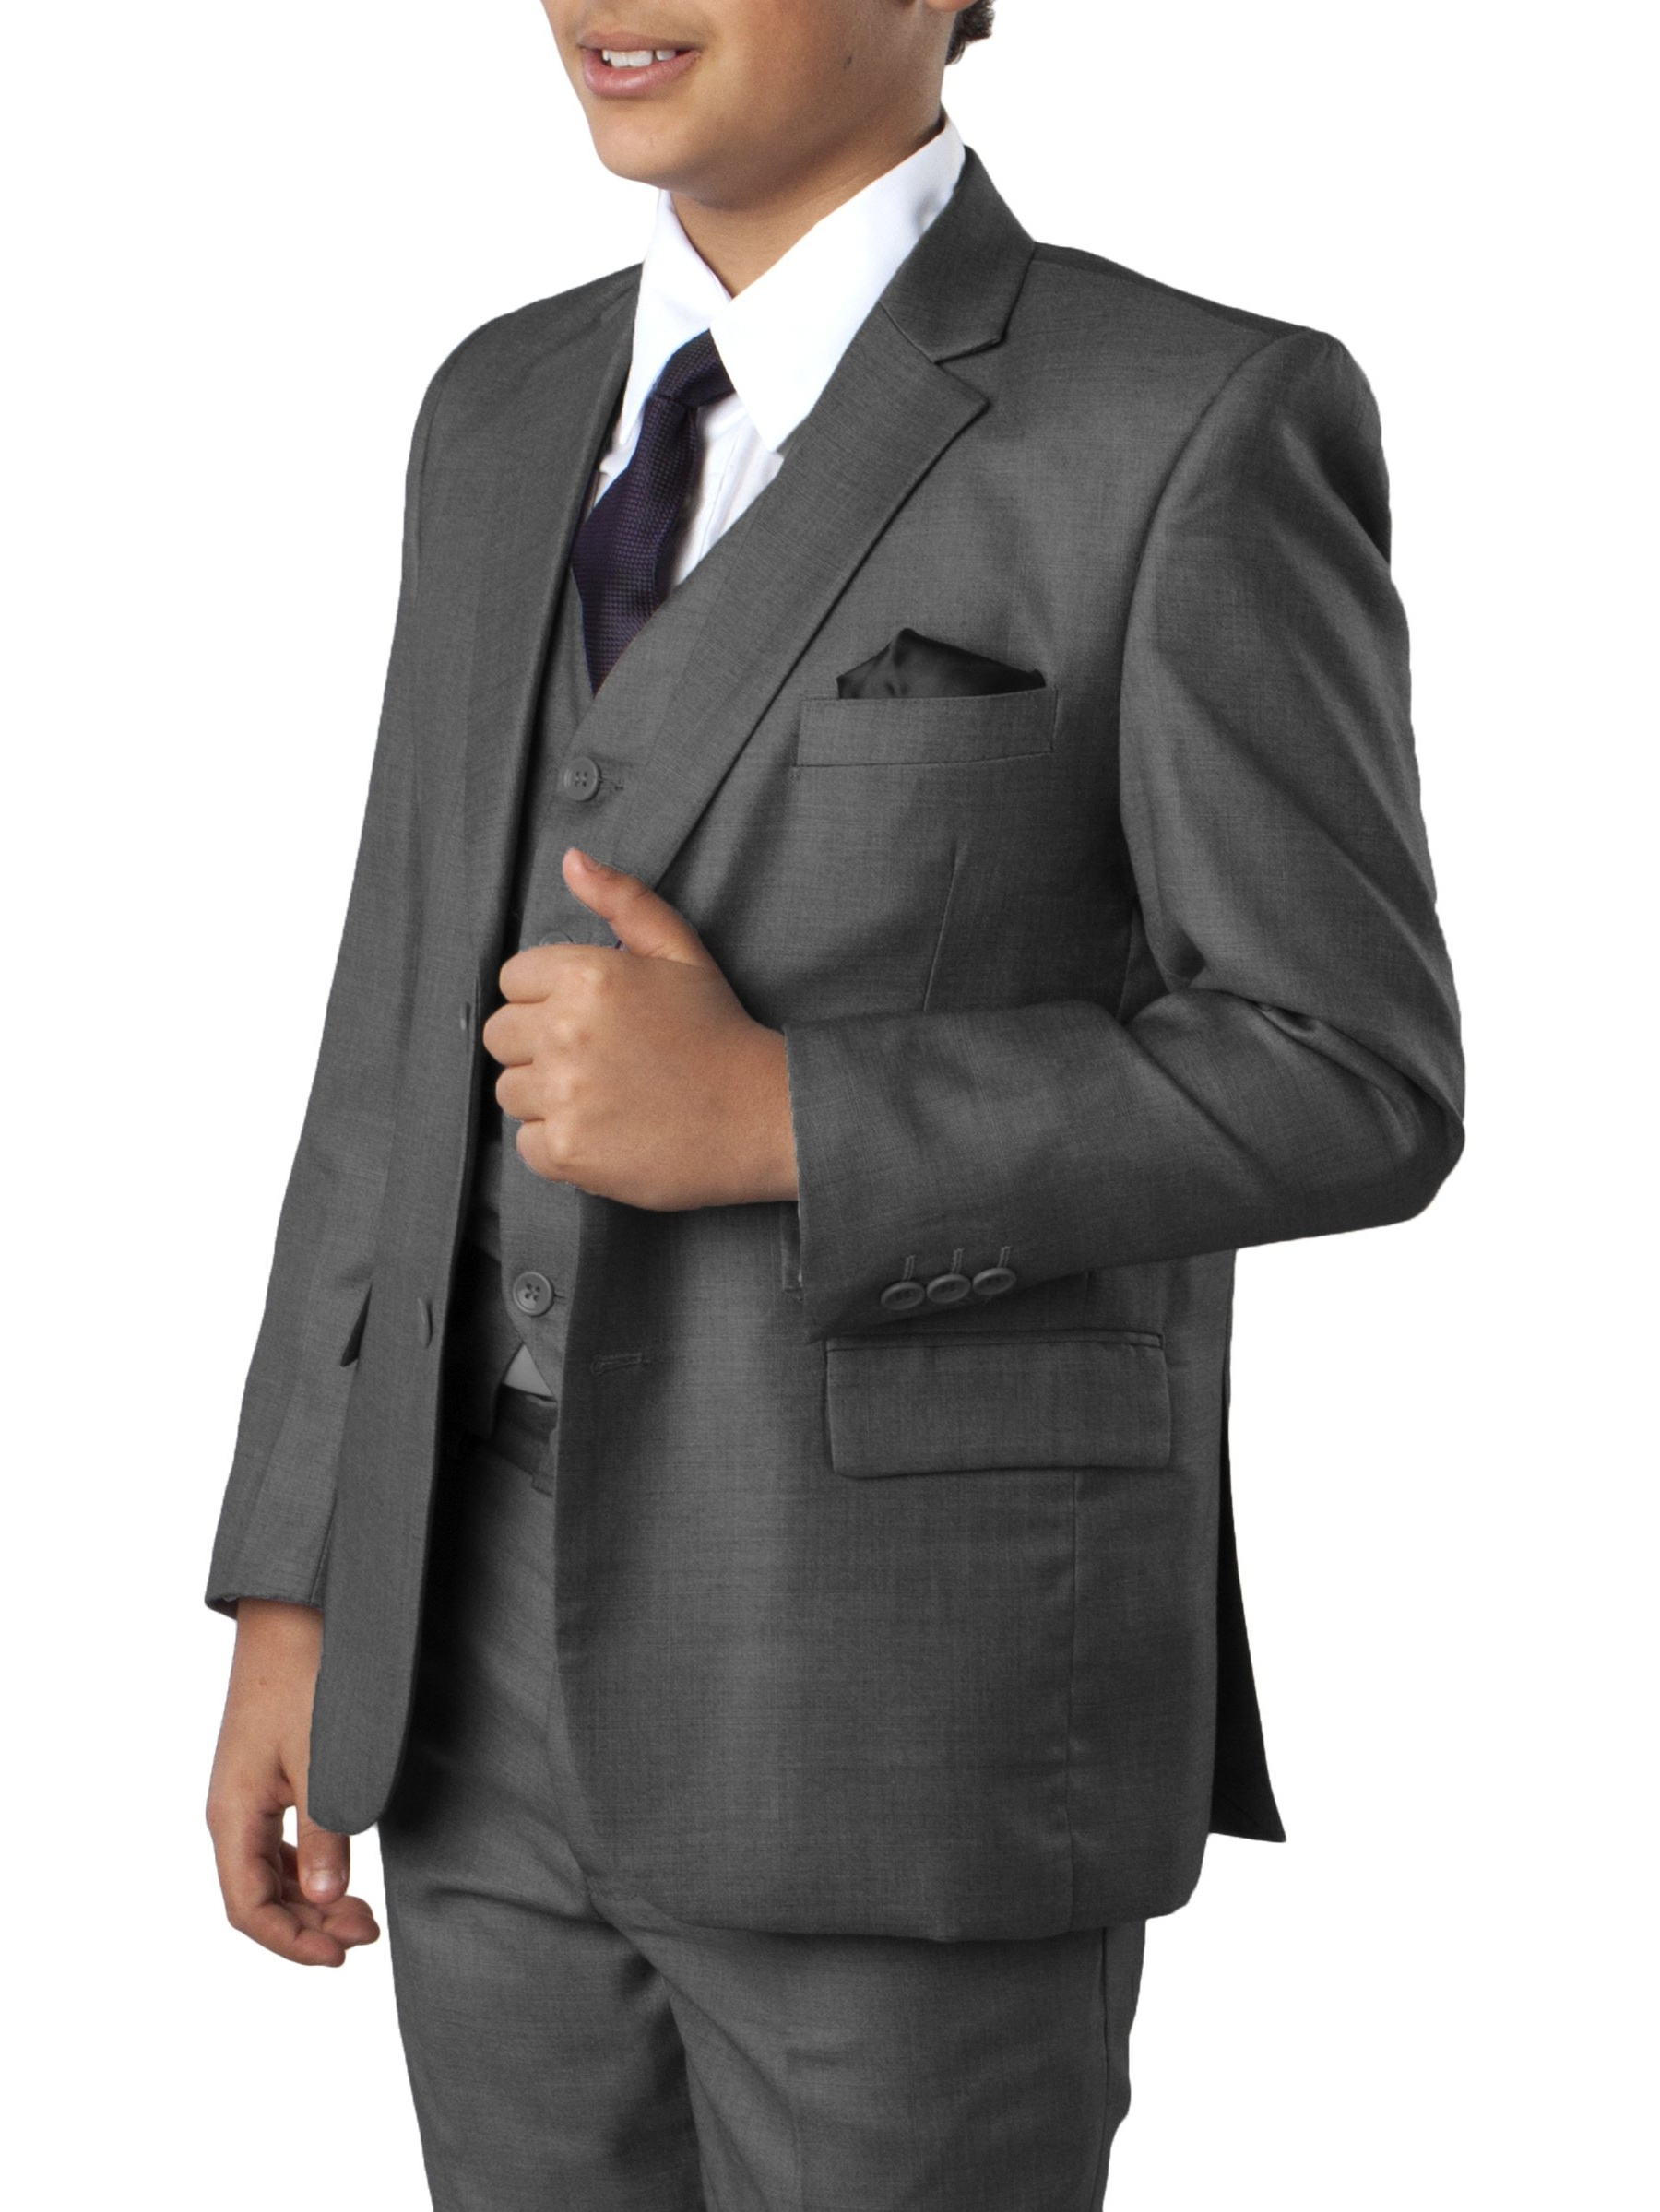 Boys Suit 5 Piece Young Boys Tuxedo Set Windowpane Including Matching Dress Shirt and Tie By Tazio